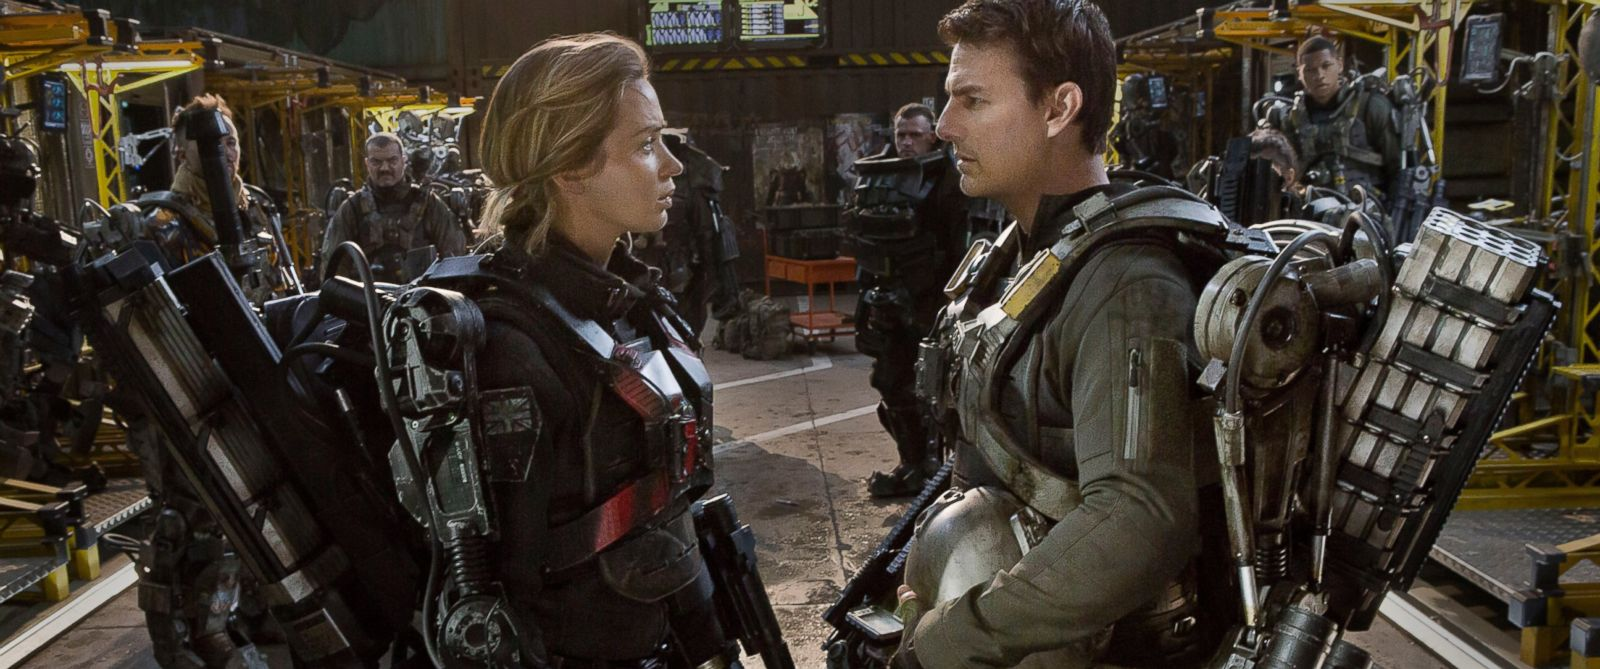 "PHOTO: Emily Blunt, left, as Rita and Tom Cruise as Cage, in Warner Bros. Pictures and Village Roadshow Pictures sci-fi thriller ""Edge of Tomorrow."""